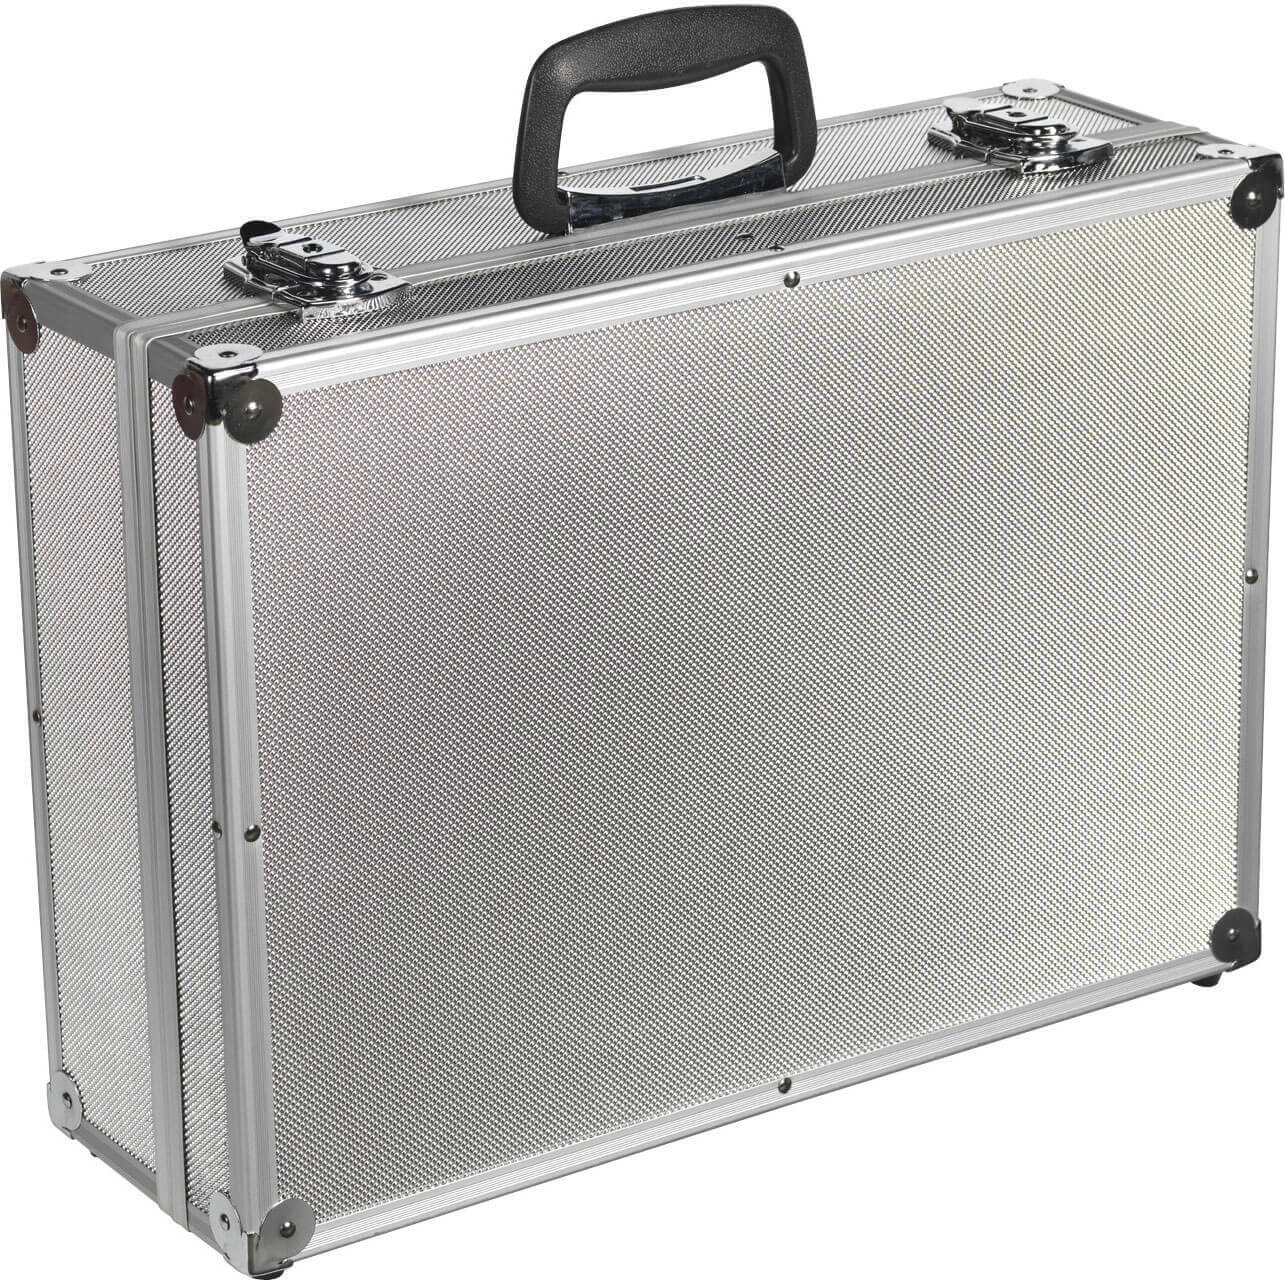 Sealey Tool Case Aluminium Square Edges